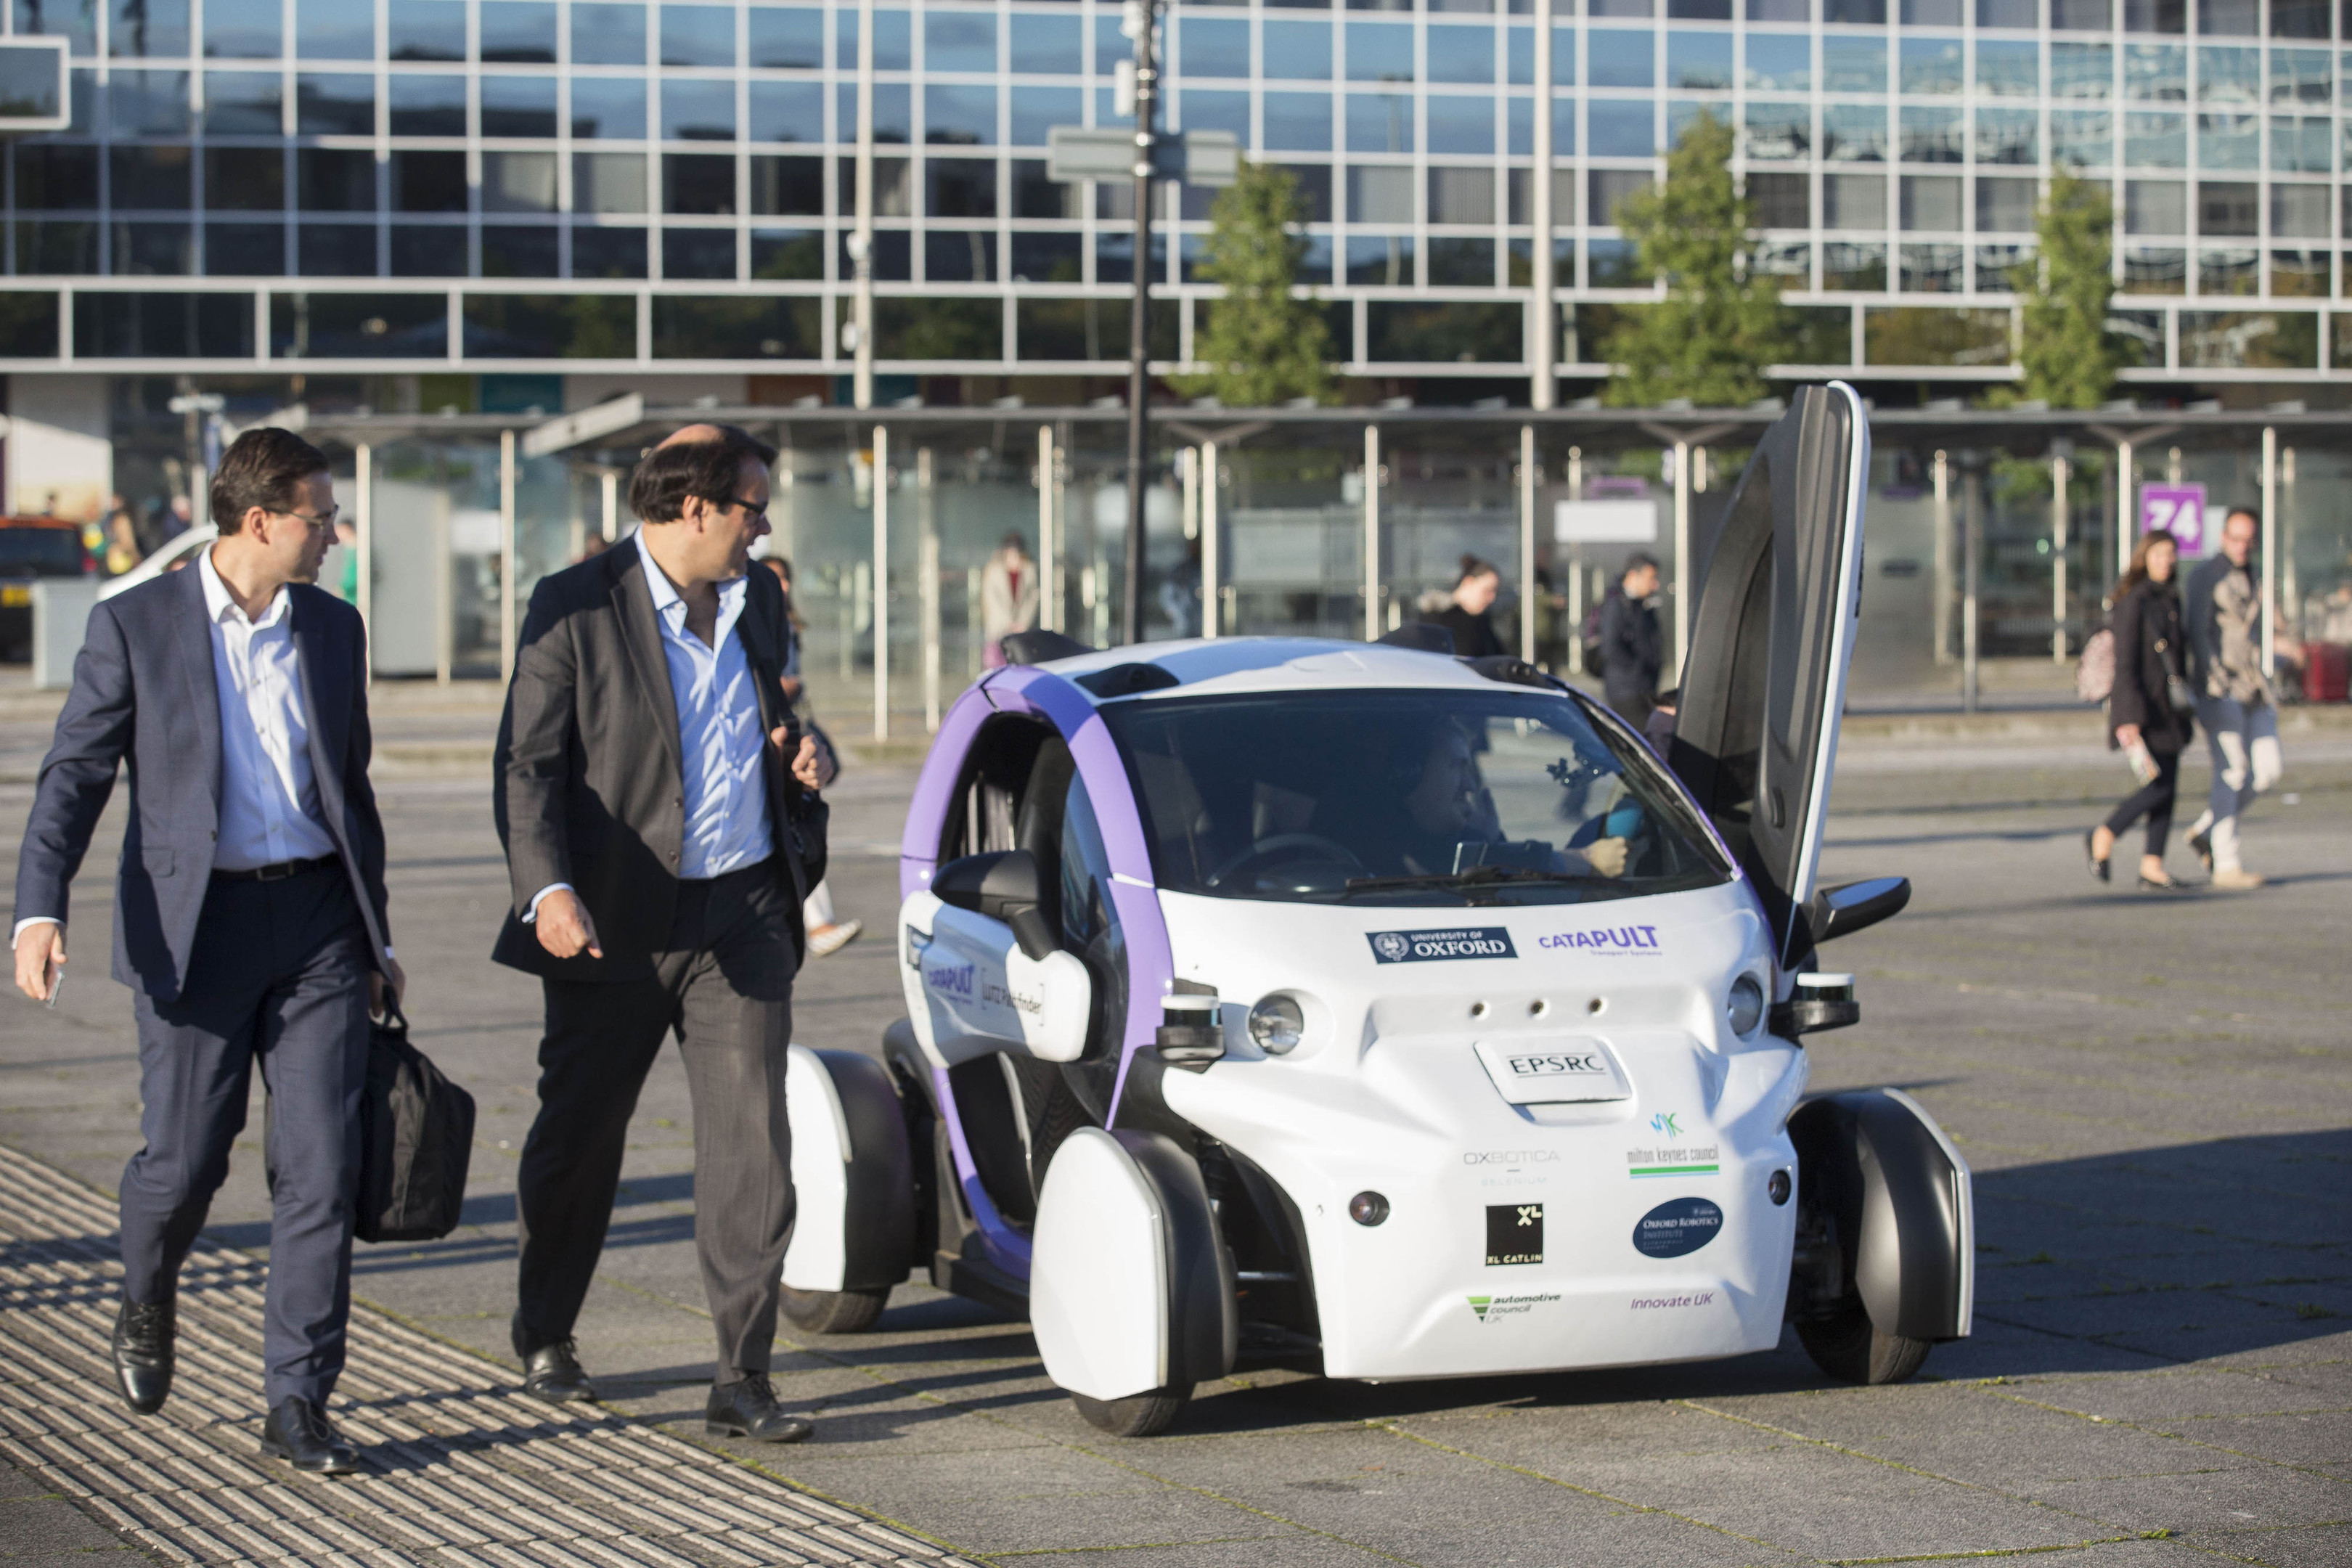 A prototype driverless car.